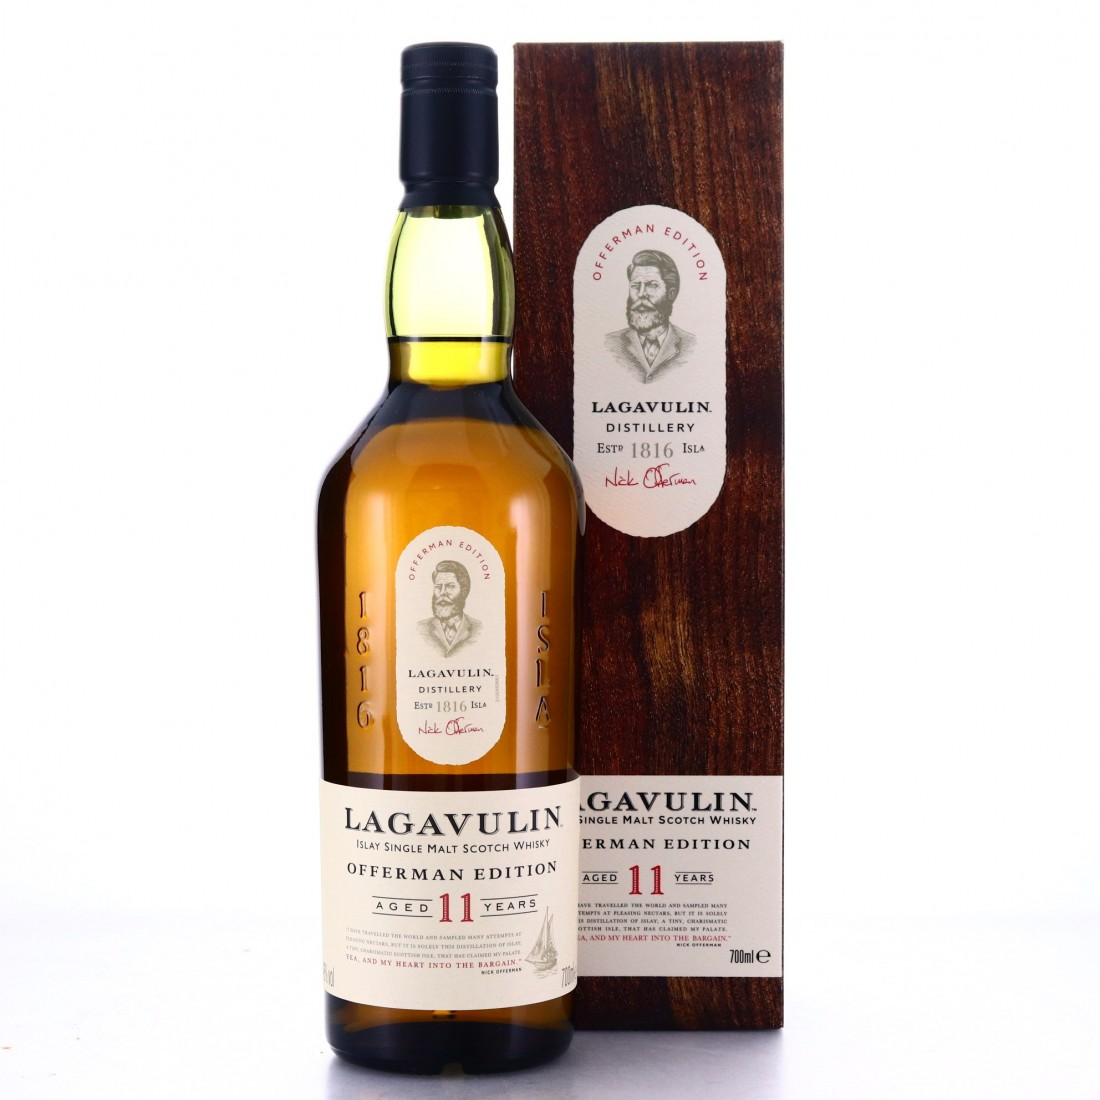 Lagavulin Offerman Edition 11 Year Old